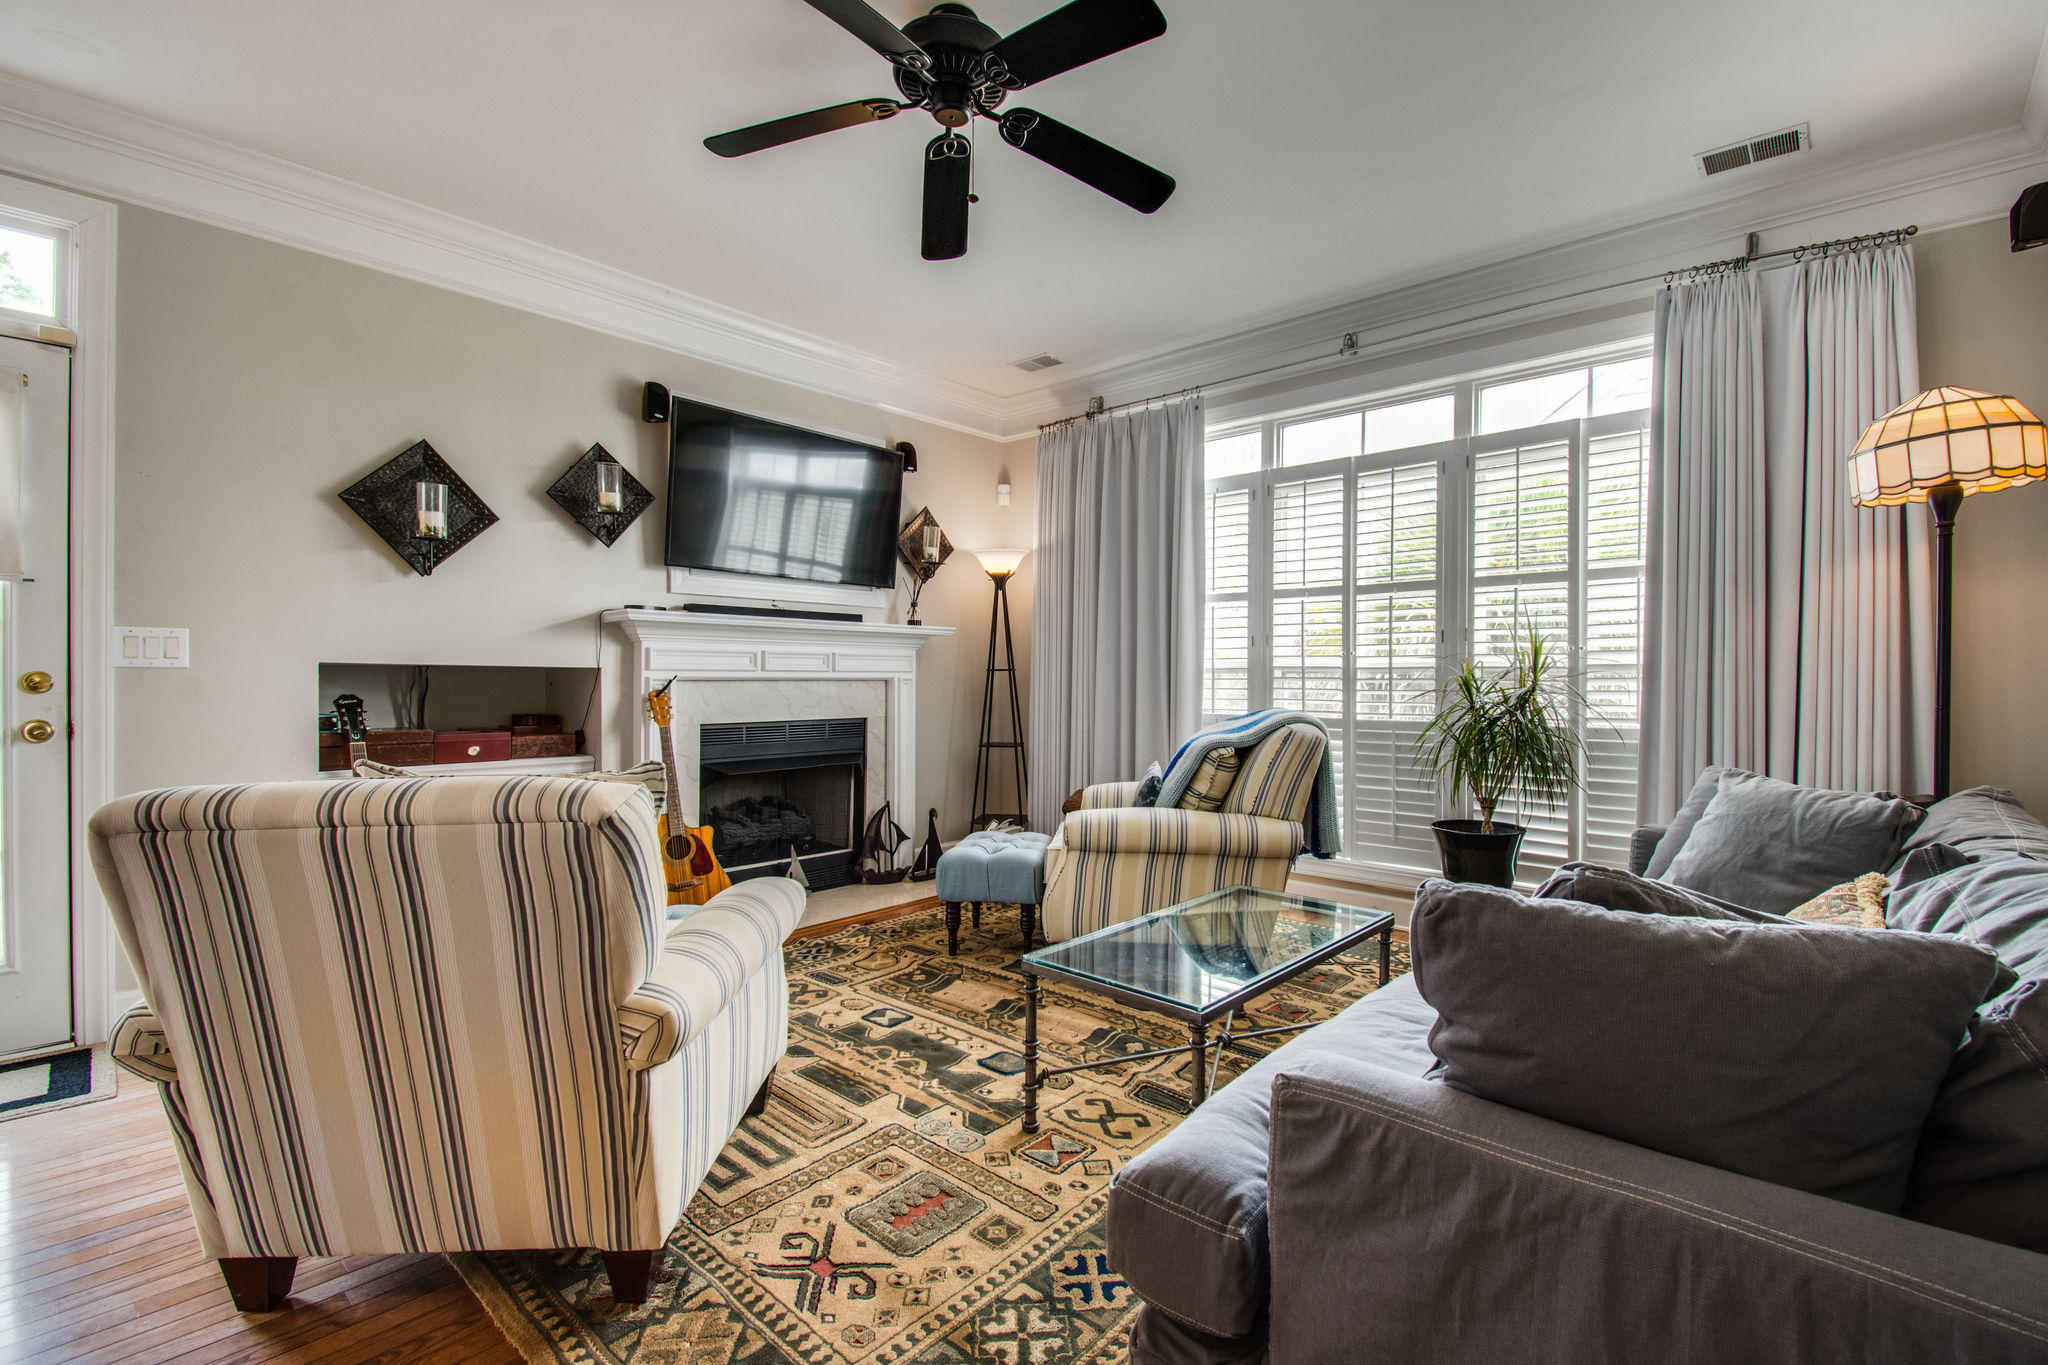 Rivertowne On The Wando Homes For Sale - 2226 Marsh, Mount Pleasant, SC - 24